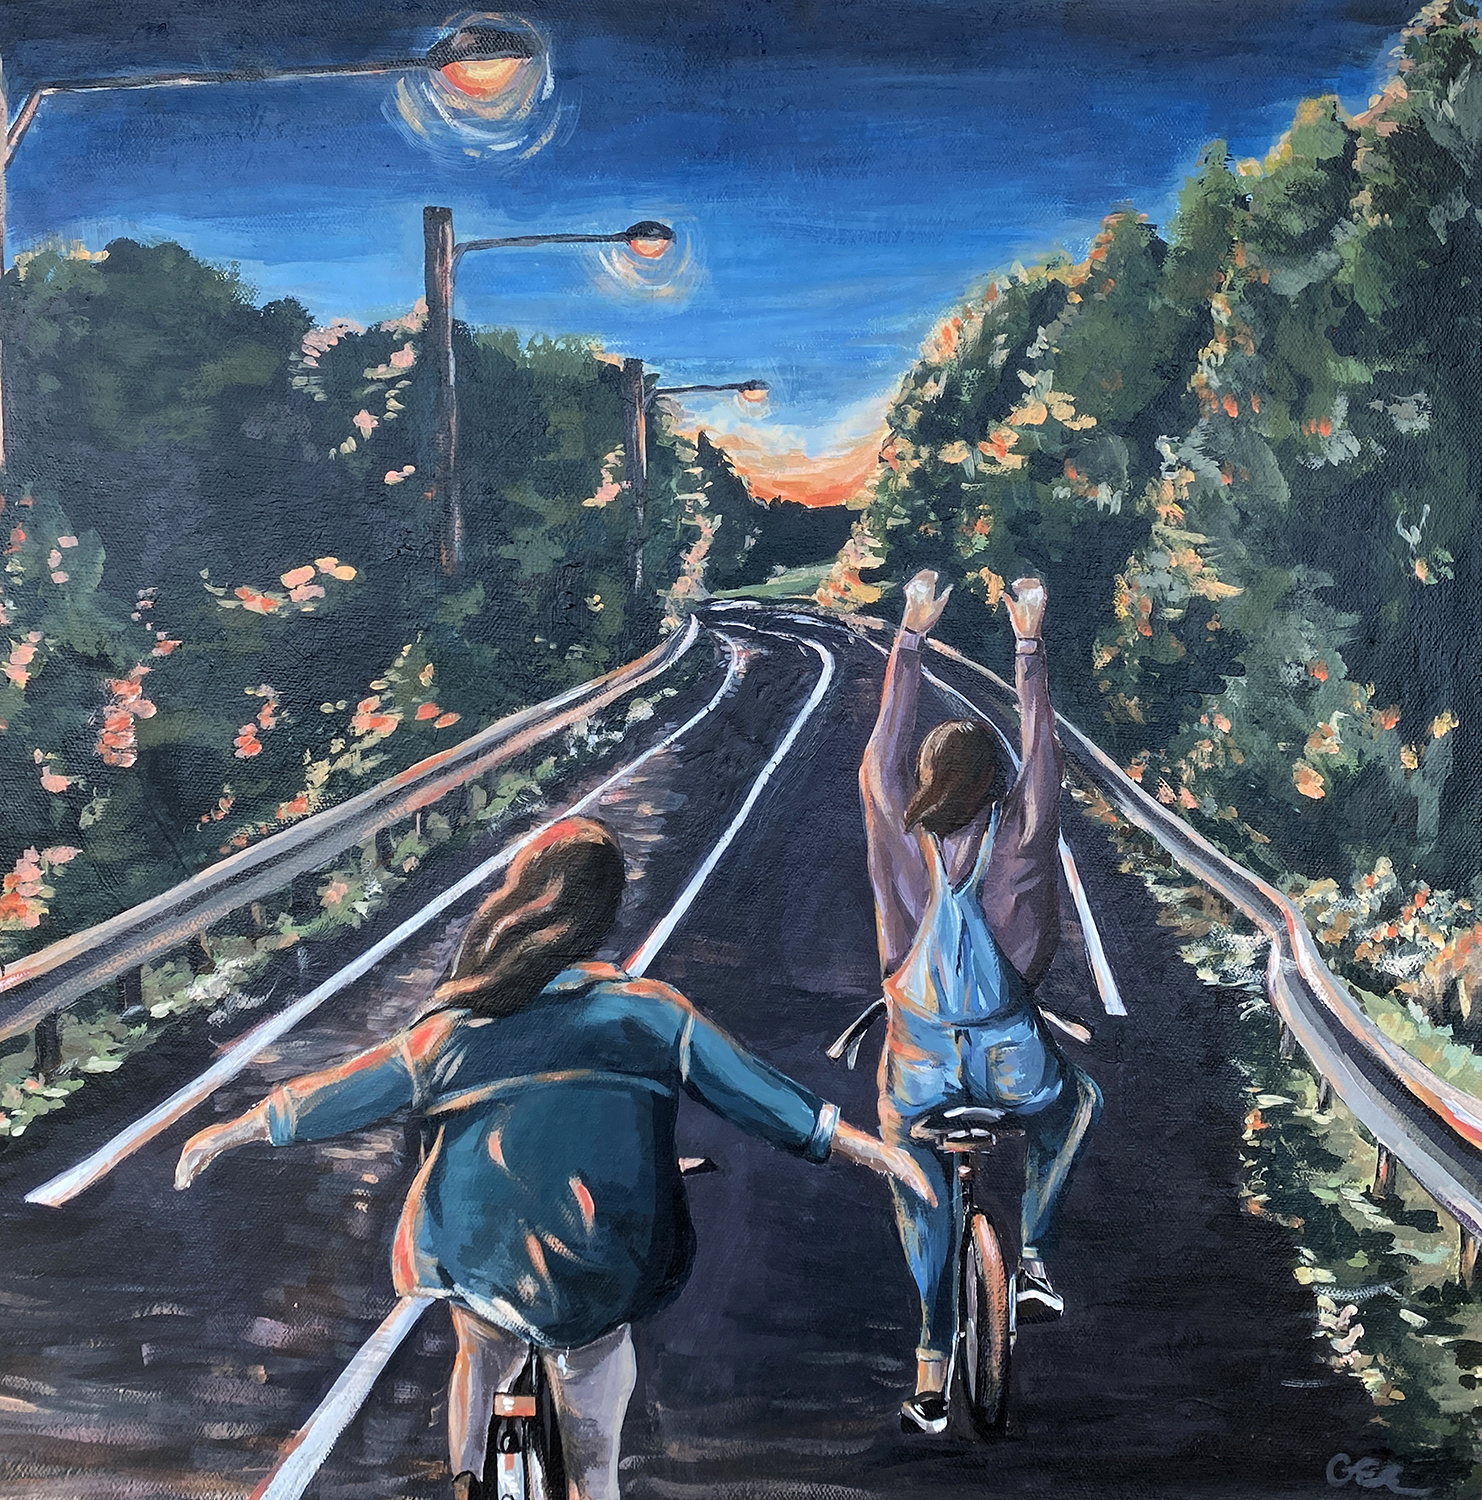 The Place we were Made by Gwen Elmhirst, acrylic on canvas - Banting Memorial High School